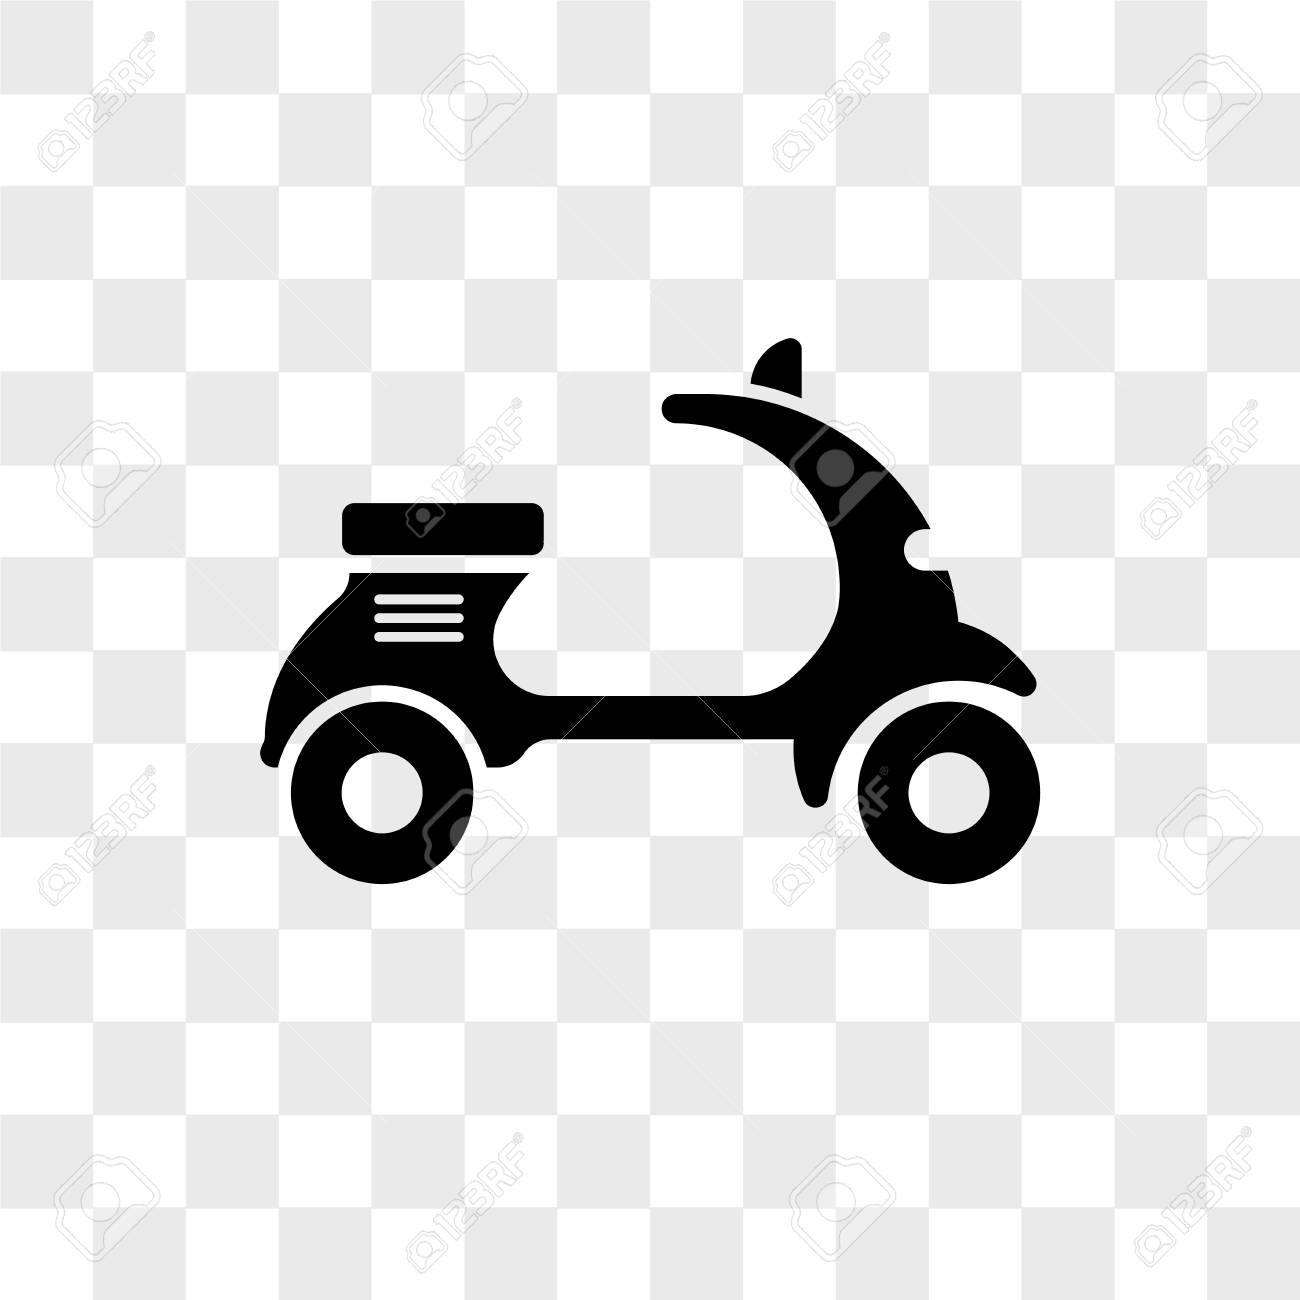 scooter bike vector icon isolated on transparent background royalty free cliparts vectors and stock illustration image 107604622 scooter bike vector icon isolated on transparent background